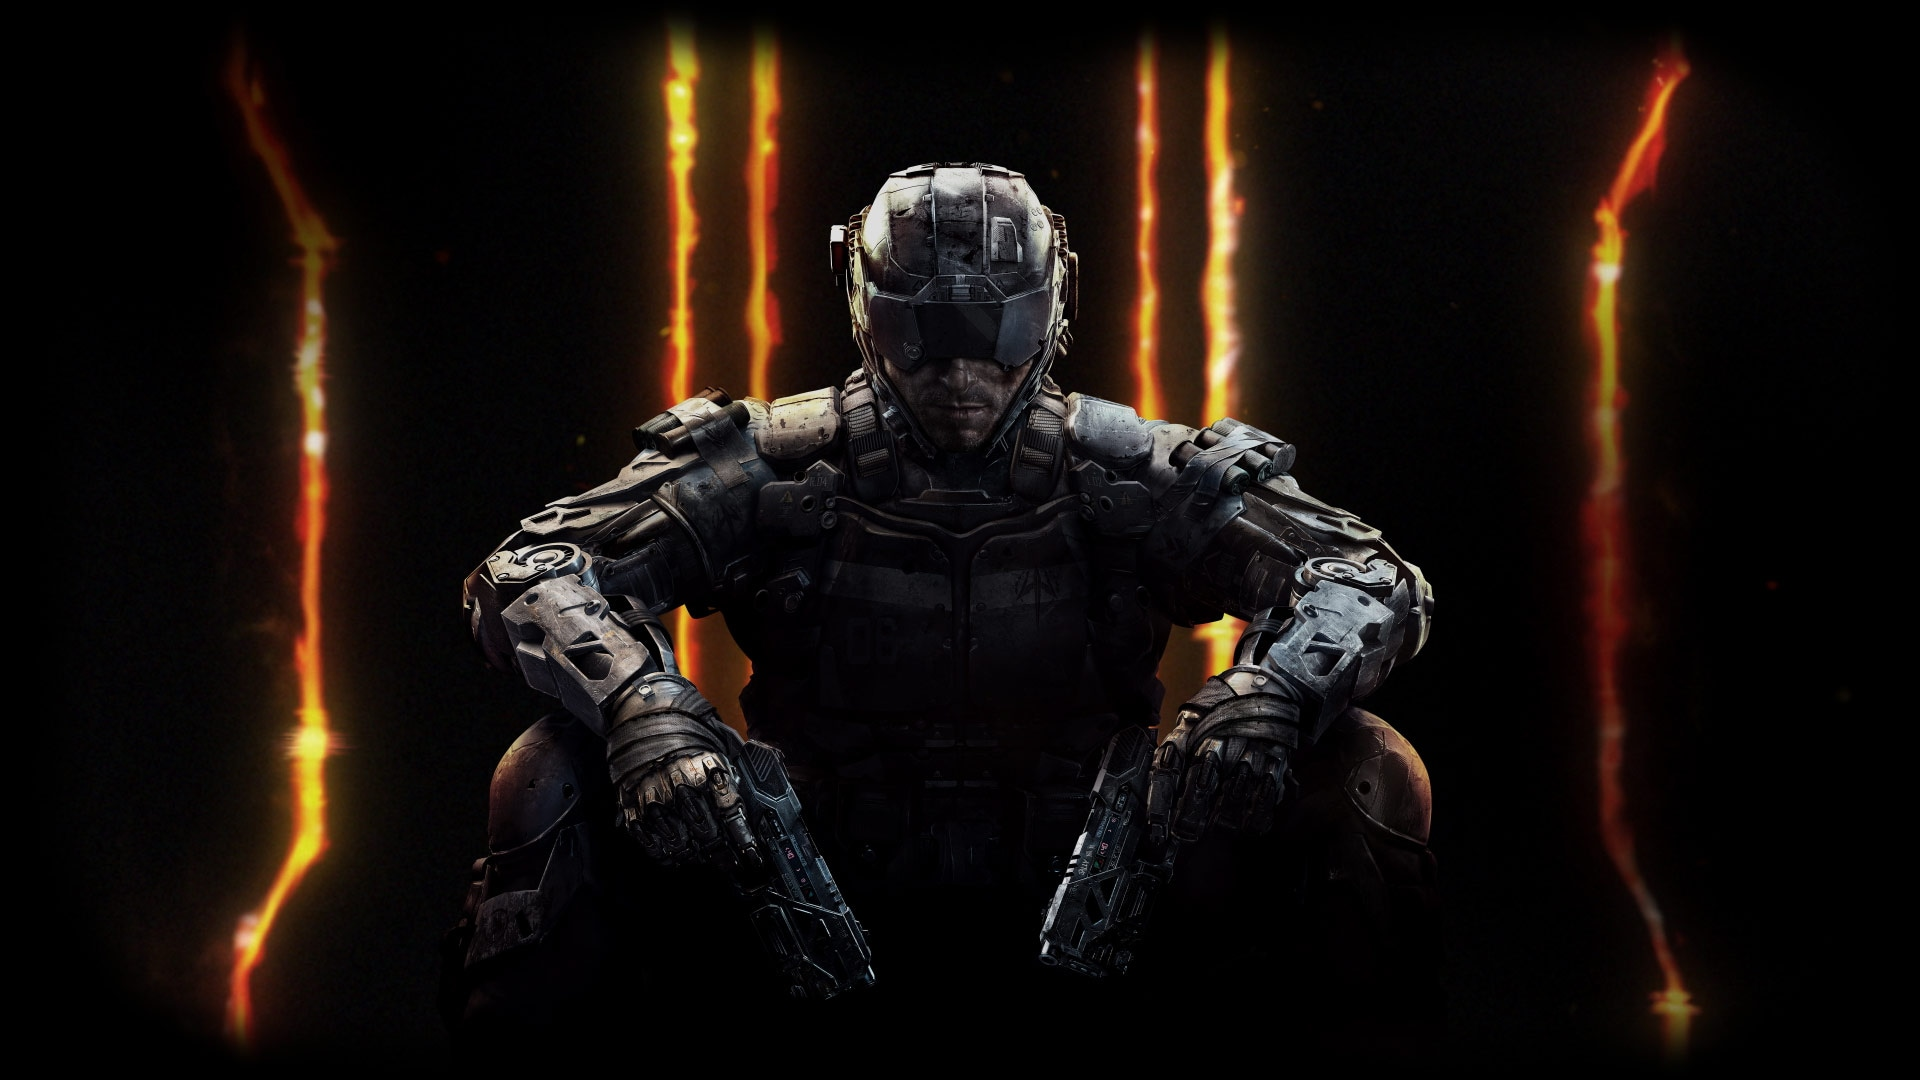 call of duty black ops iii wallpaper